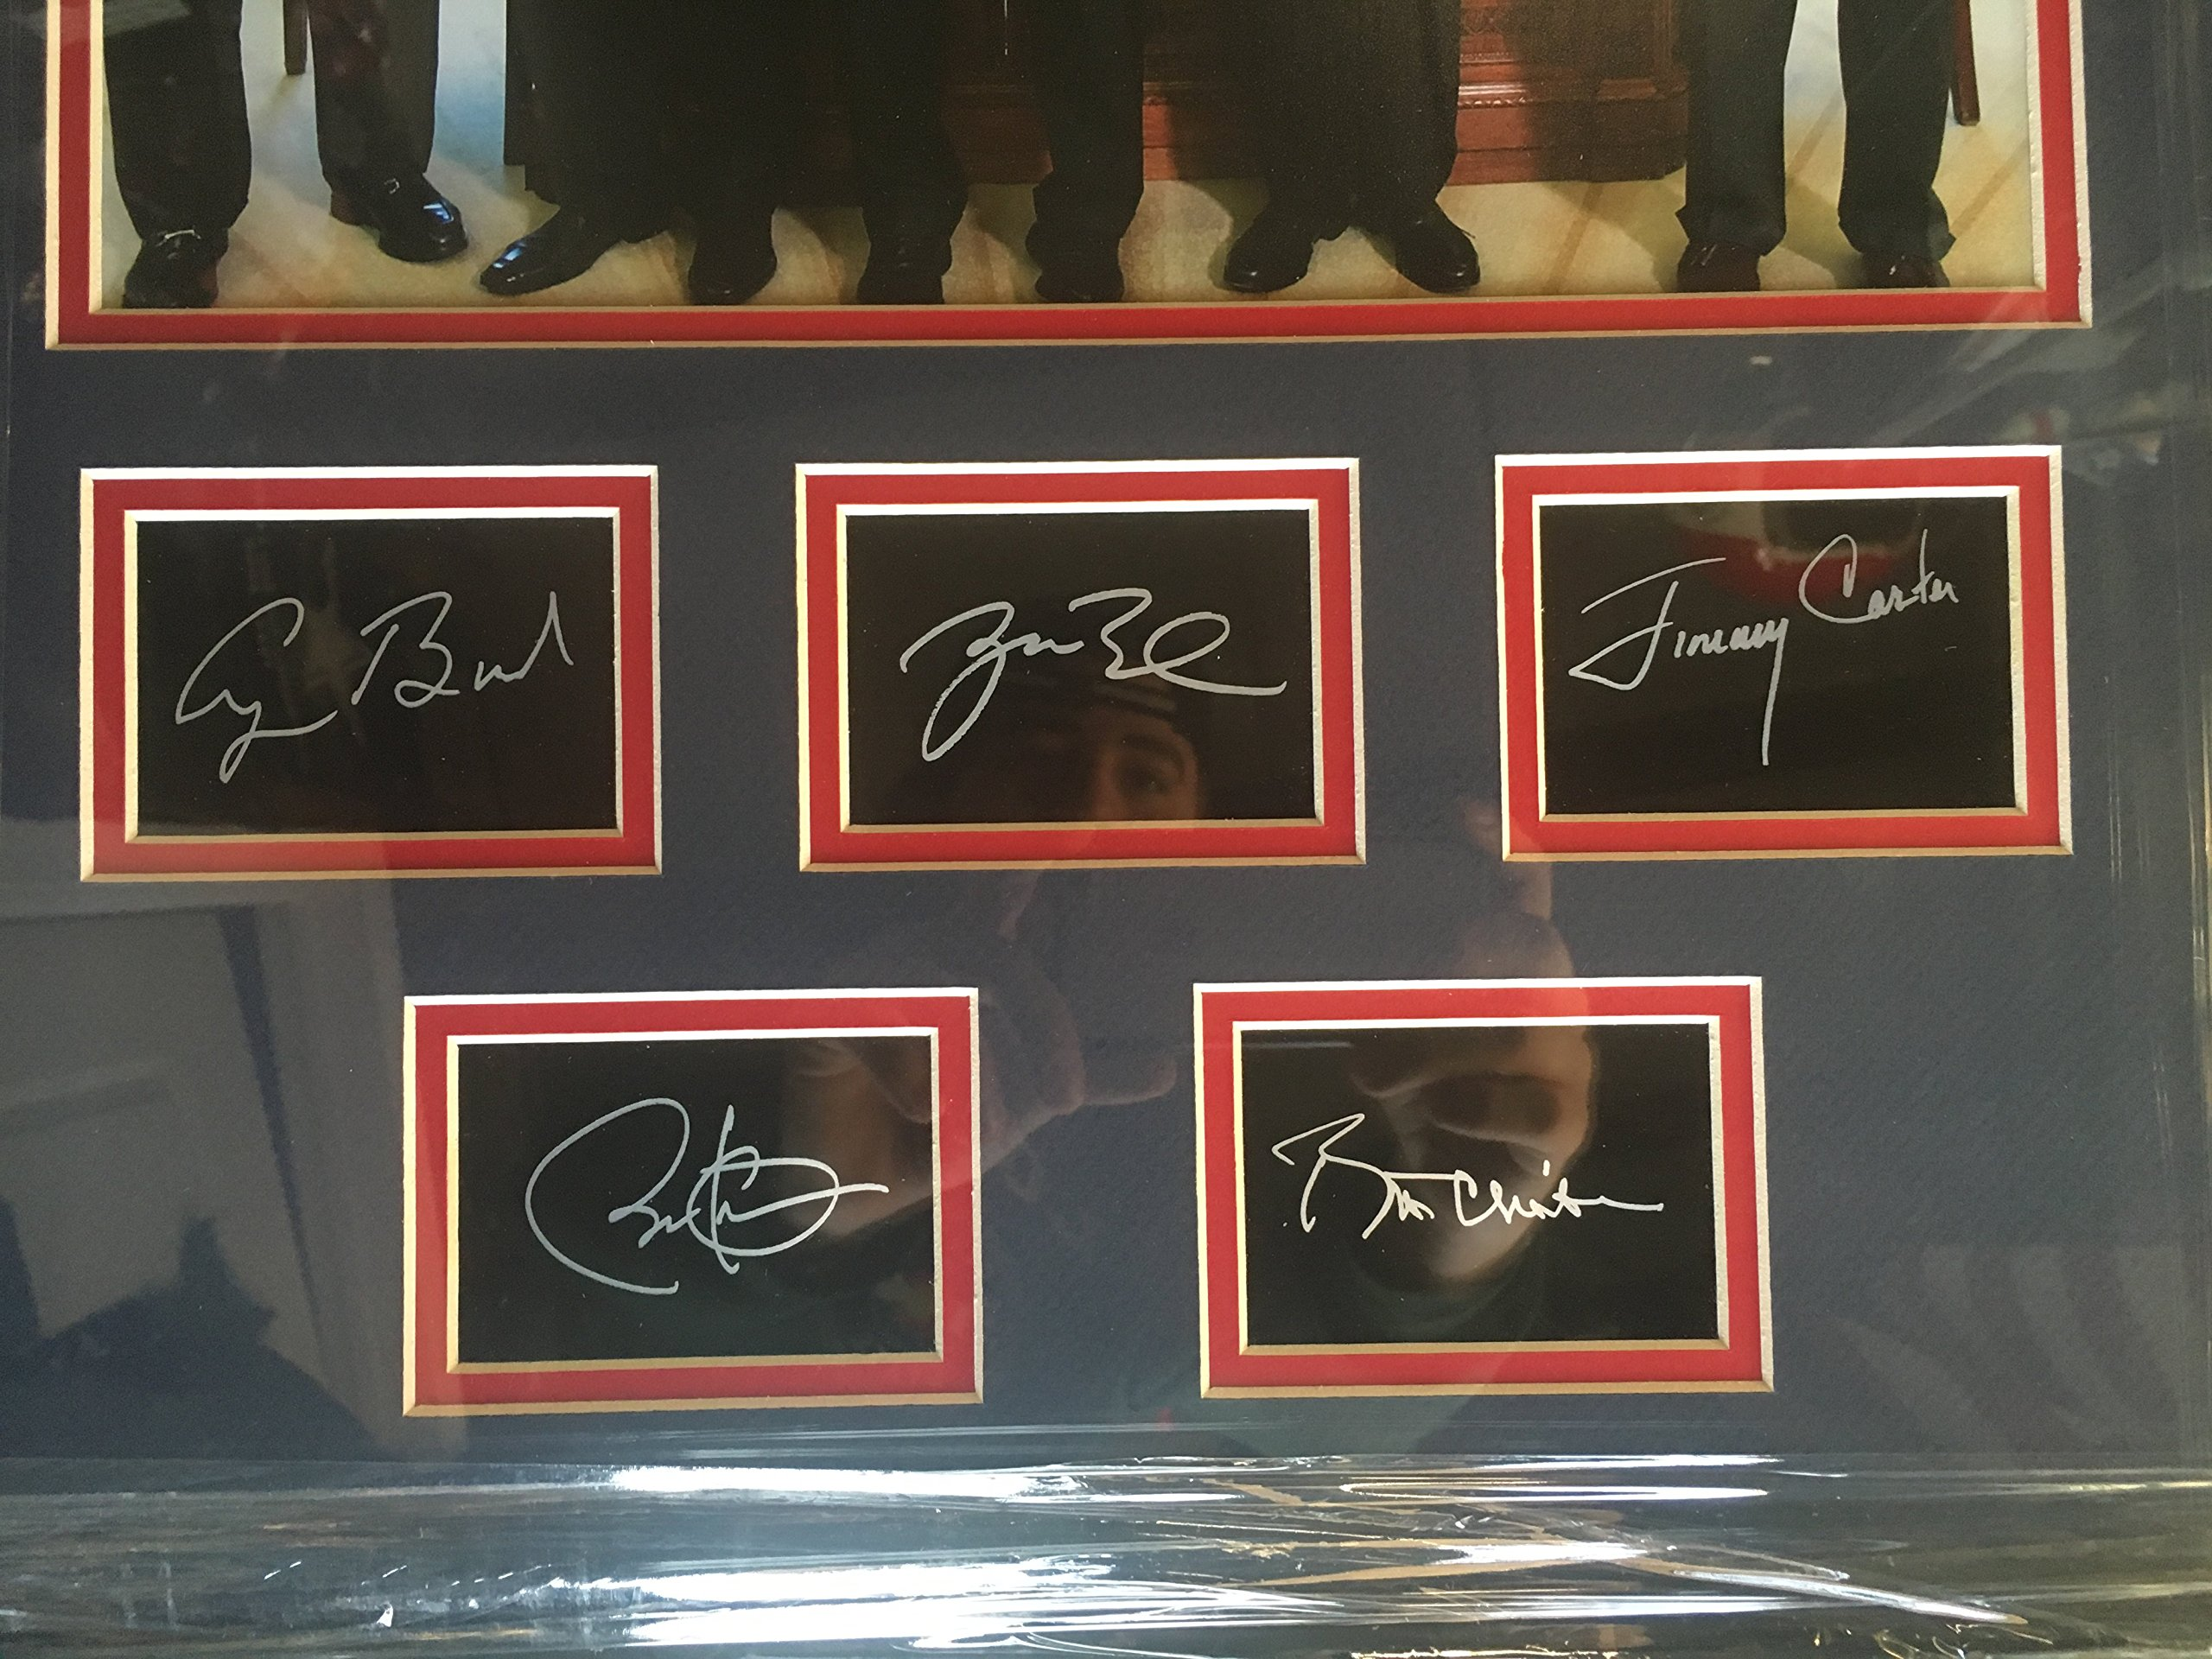 Former Presidents Jimmy Carter, George H.W. Bush, George W. Bush, Bill Clinton, & Barak Obama Custom Framed Photo with Laser Etched Signatures